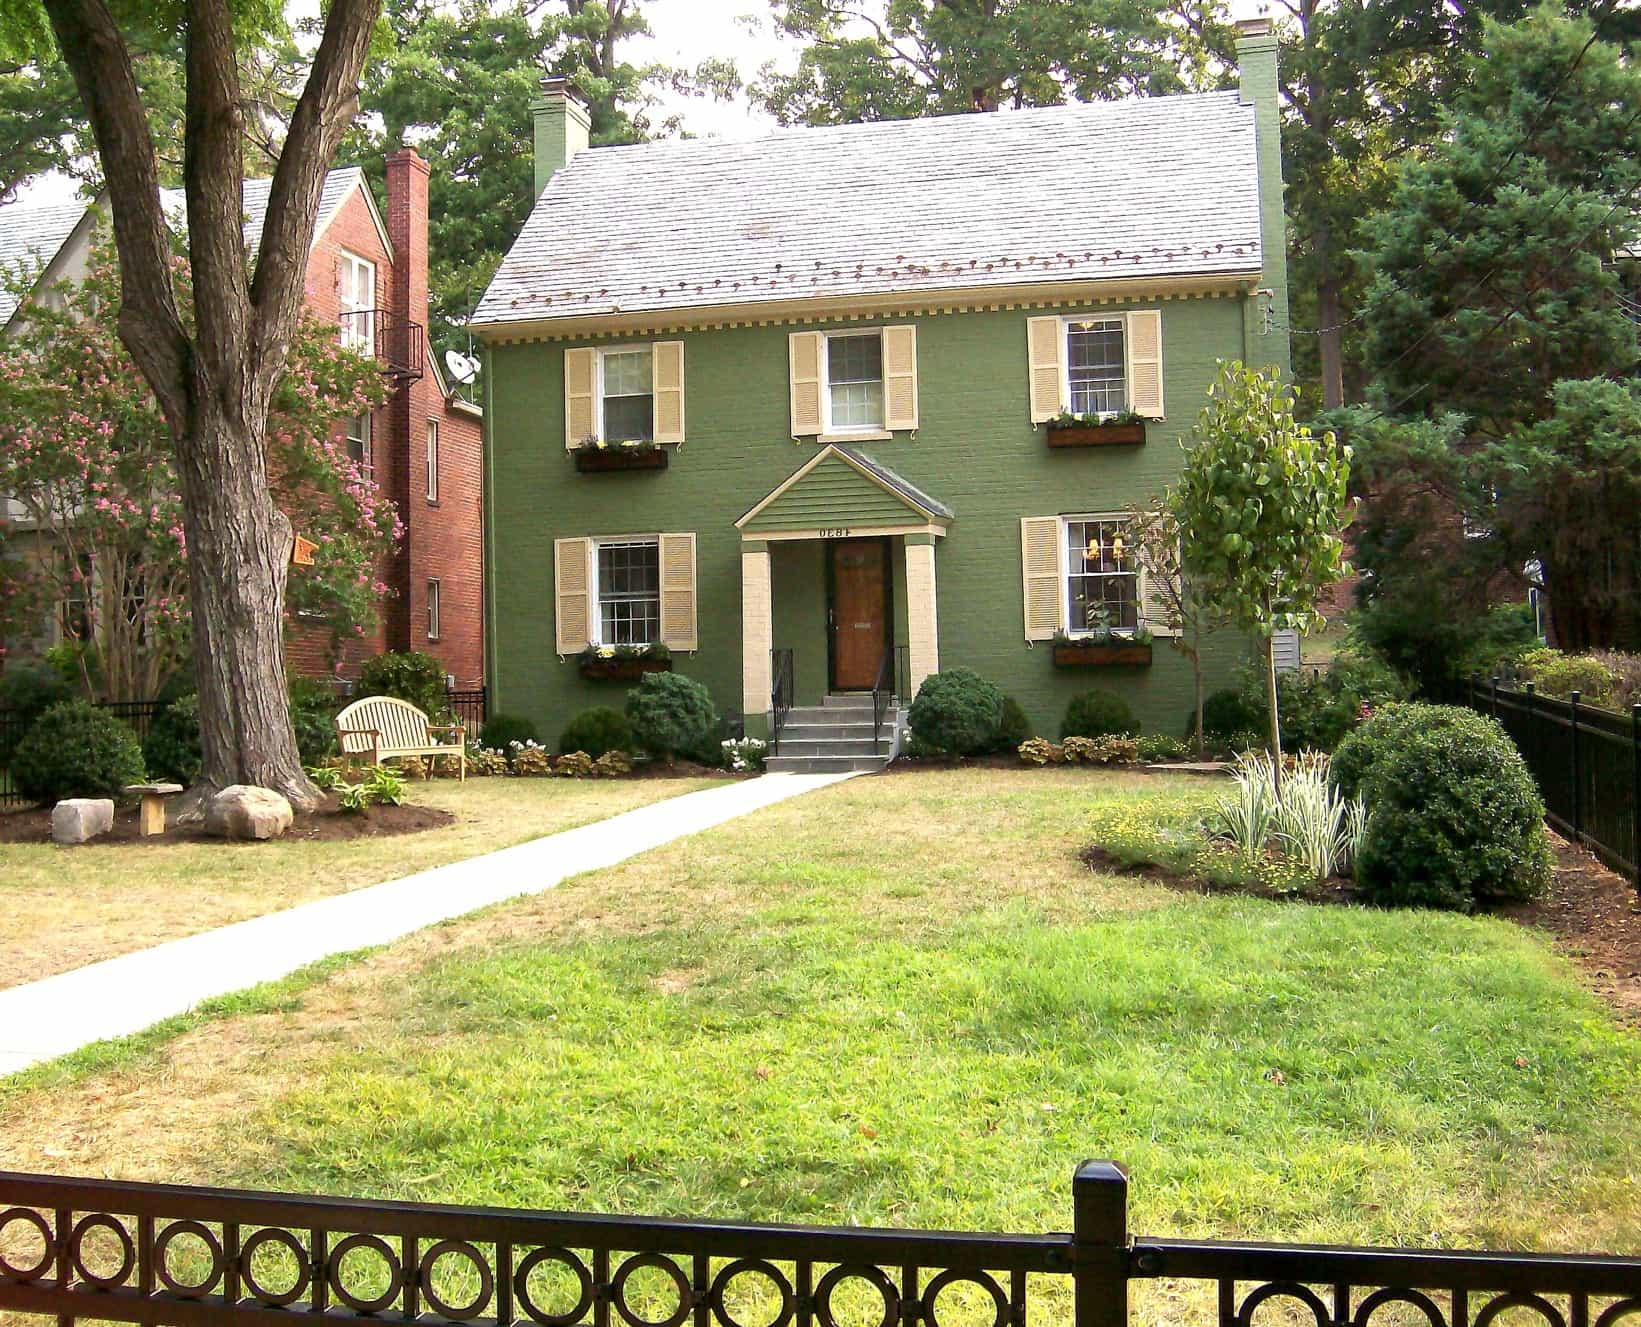 Featured Image of Federal Style Home With Green Paint And Yellow Shutters